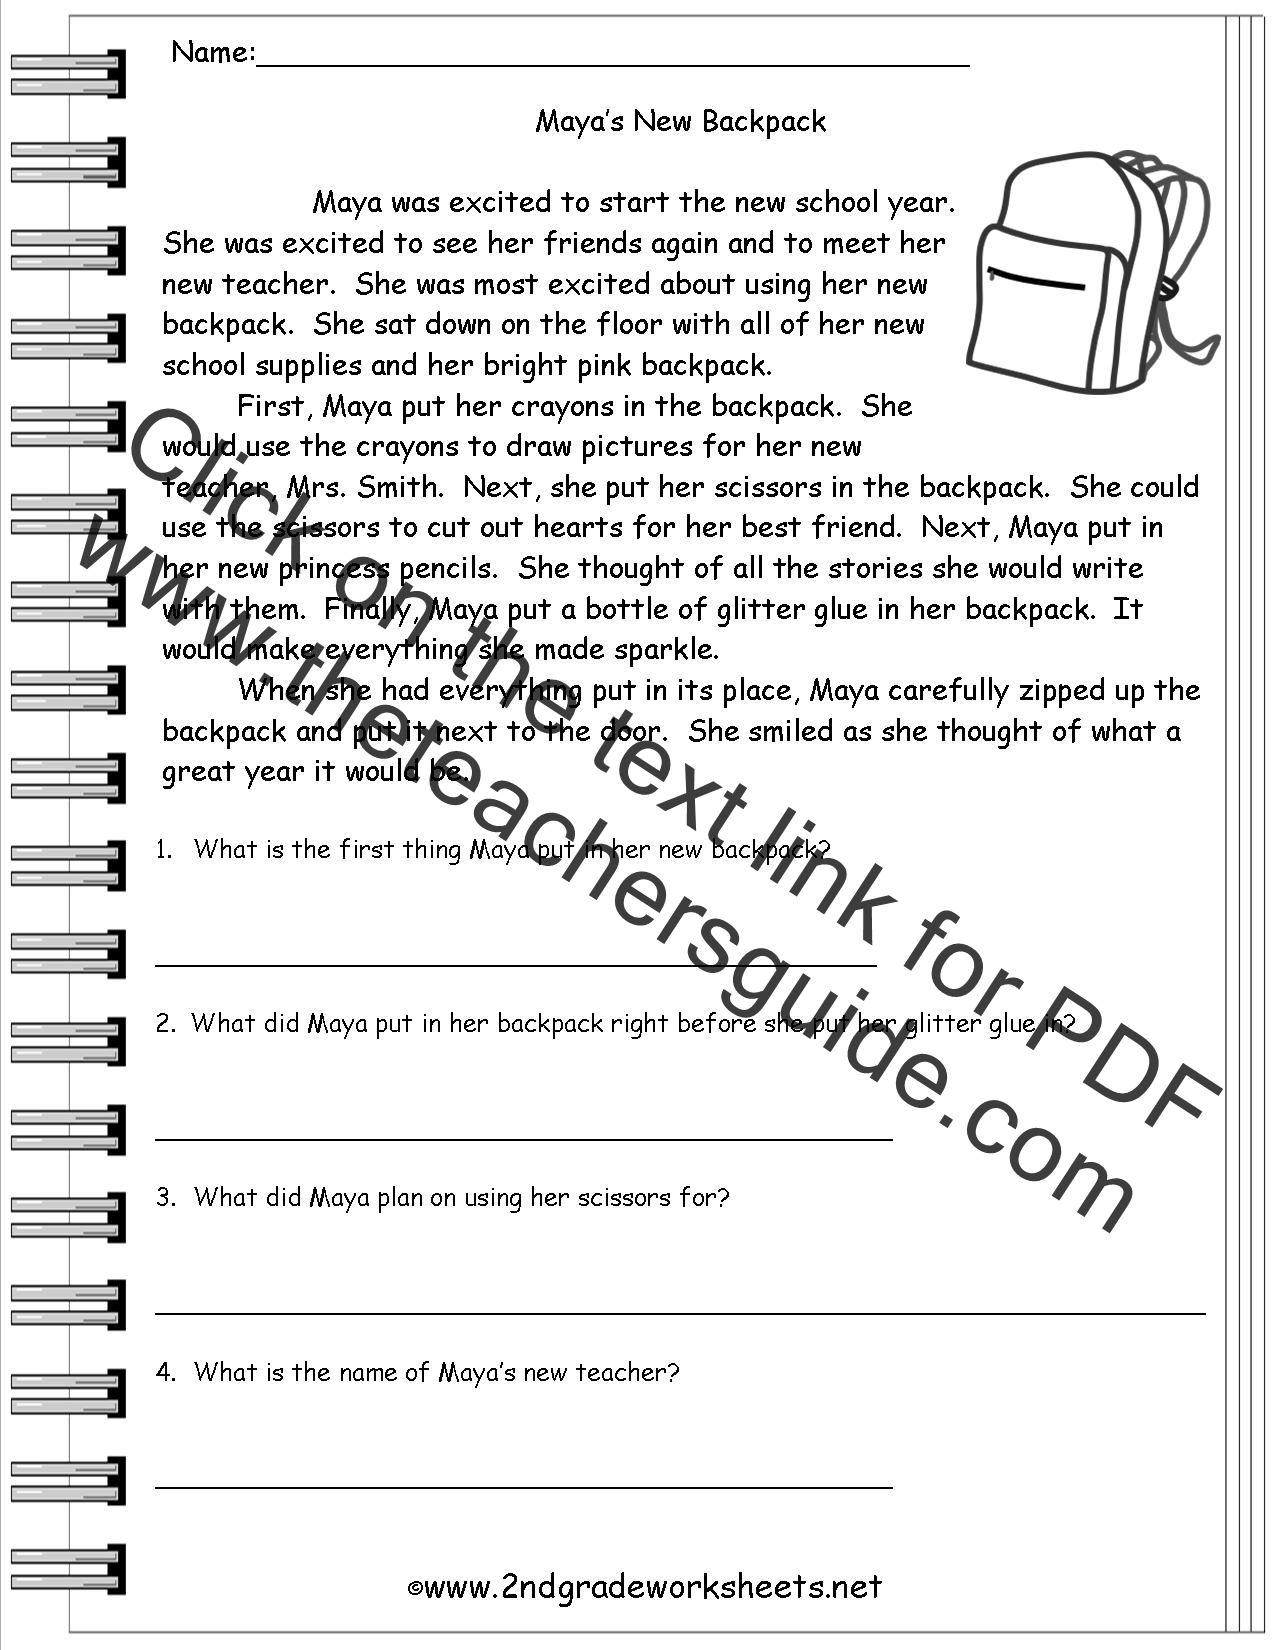 Worksheets Free Reading Worksheets For 5th Grade reading worksheeets literature worksheets